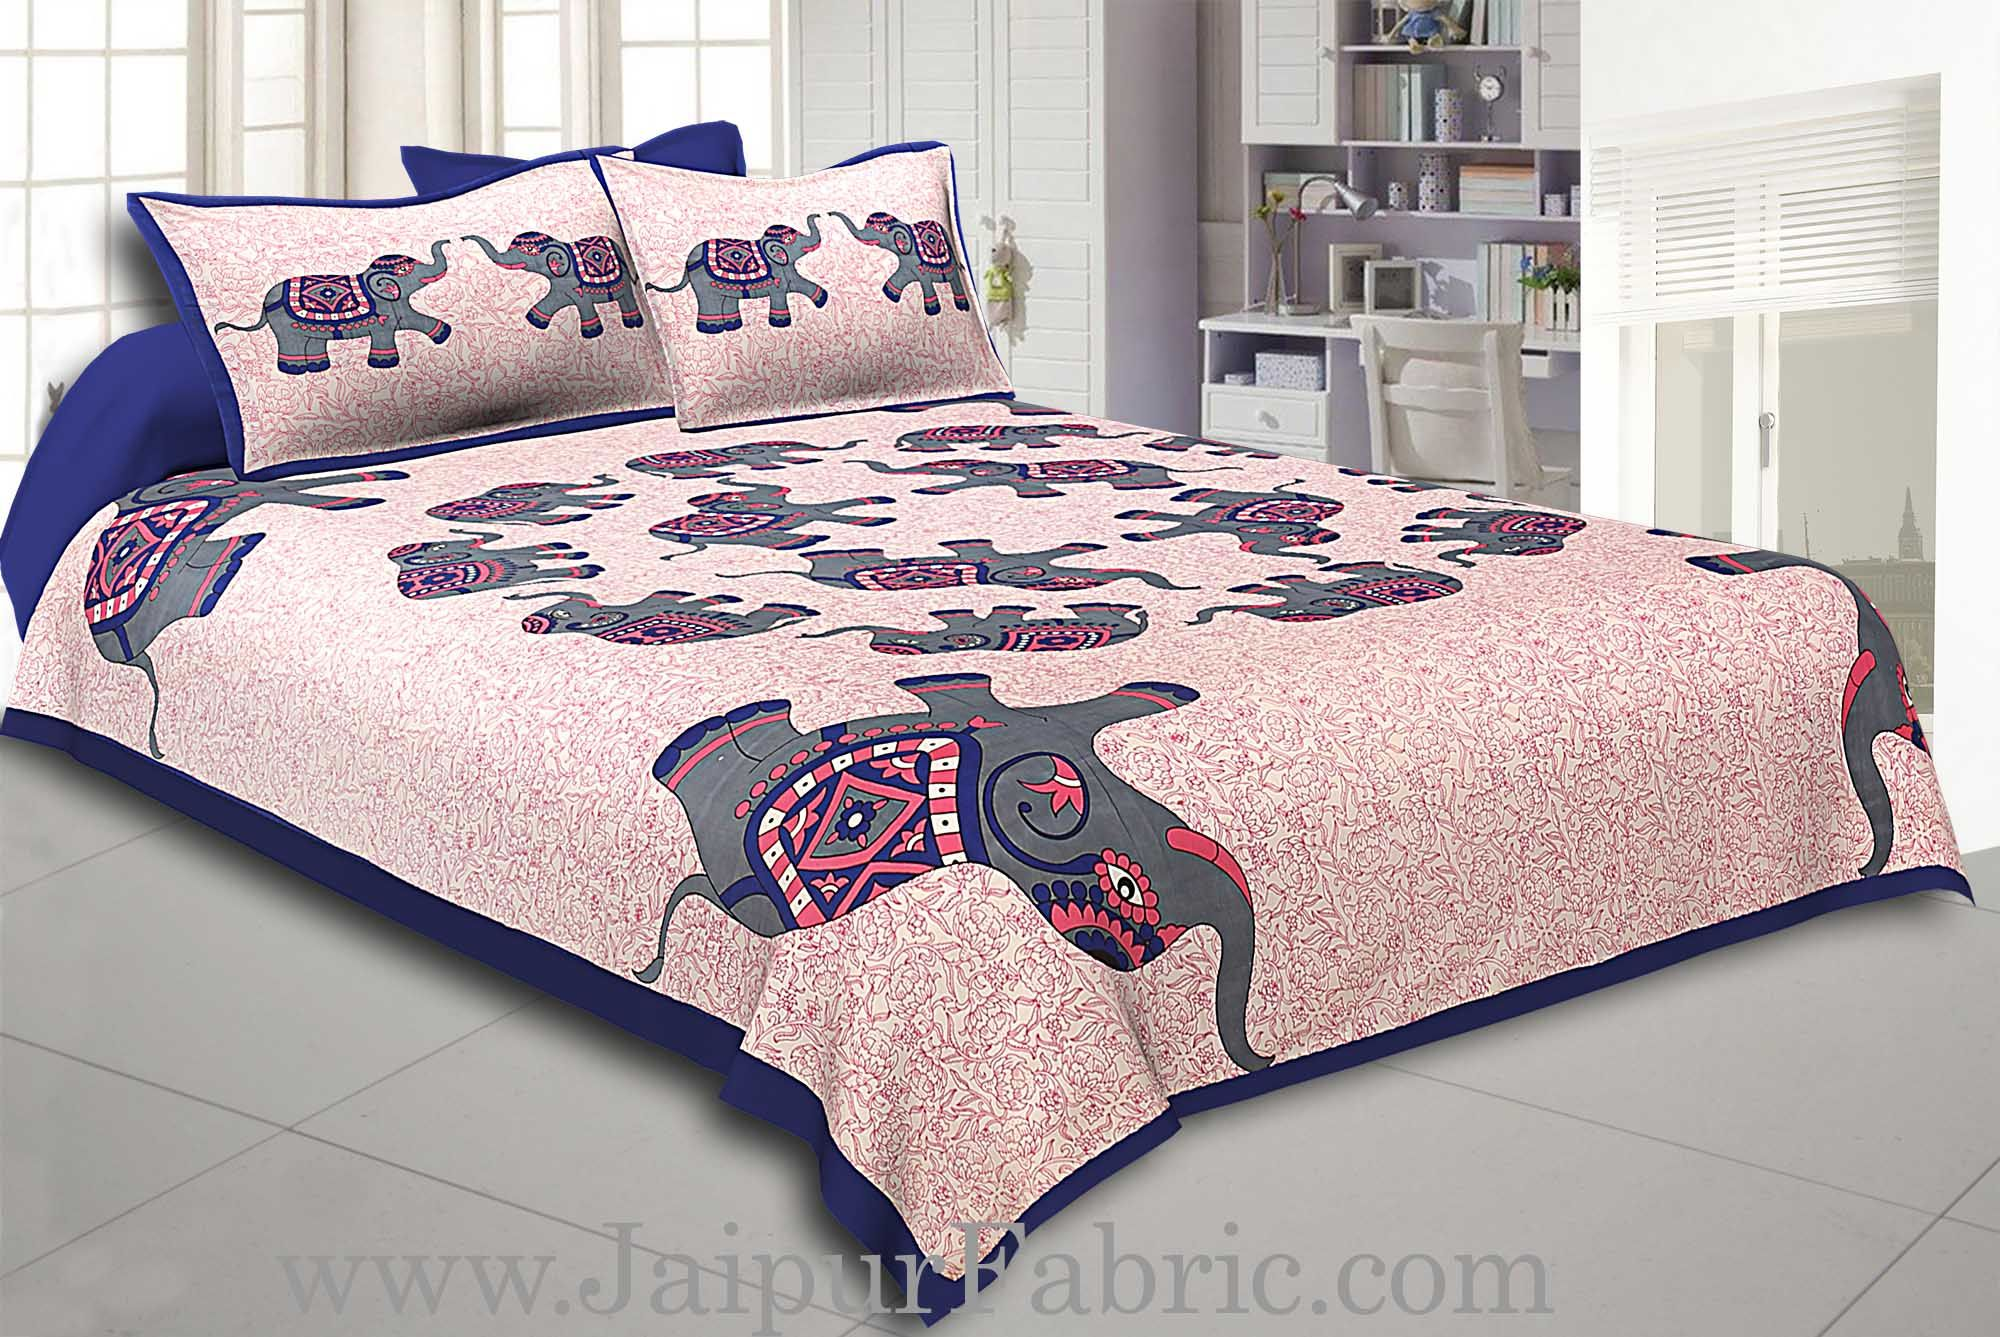 Blue Border Elephant in Round Shape Cotton Double Bedsheet